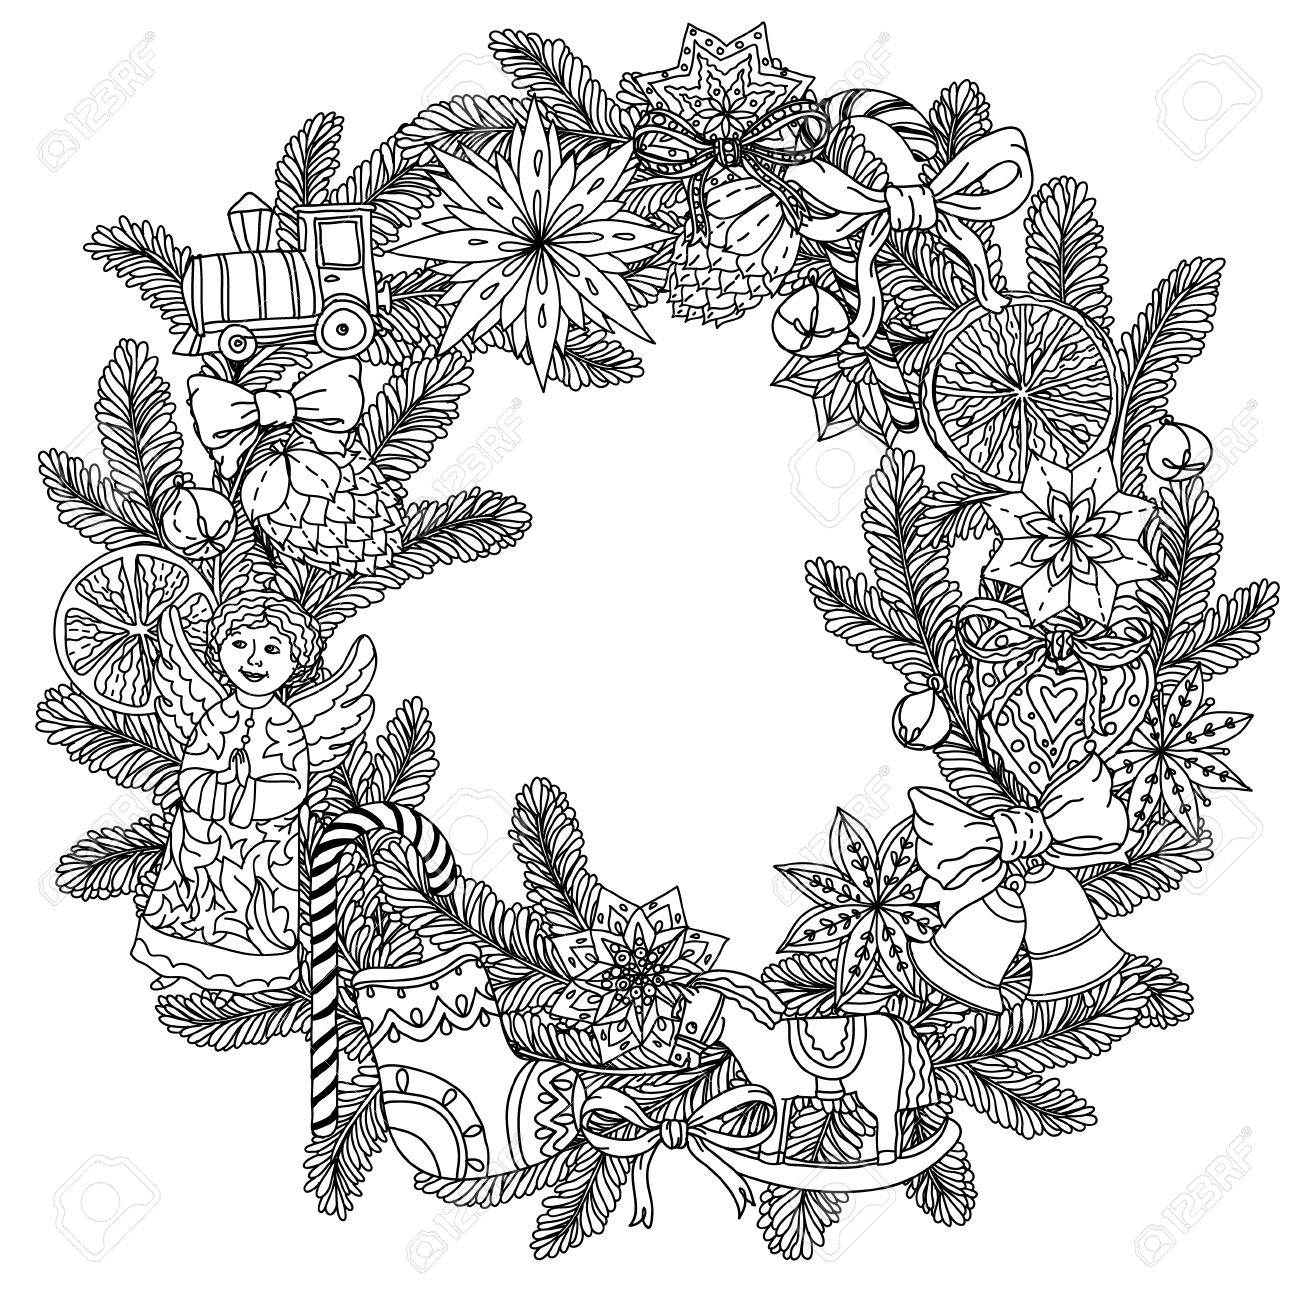 Christmas Wreath With Decorative Items Black And White The Best For Your Design